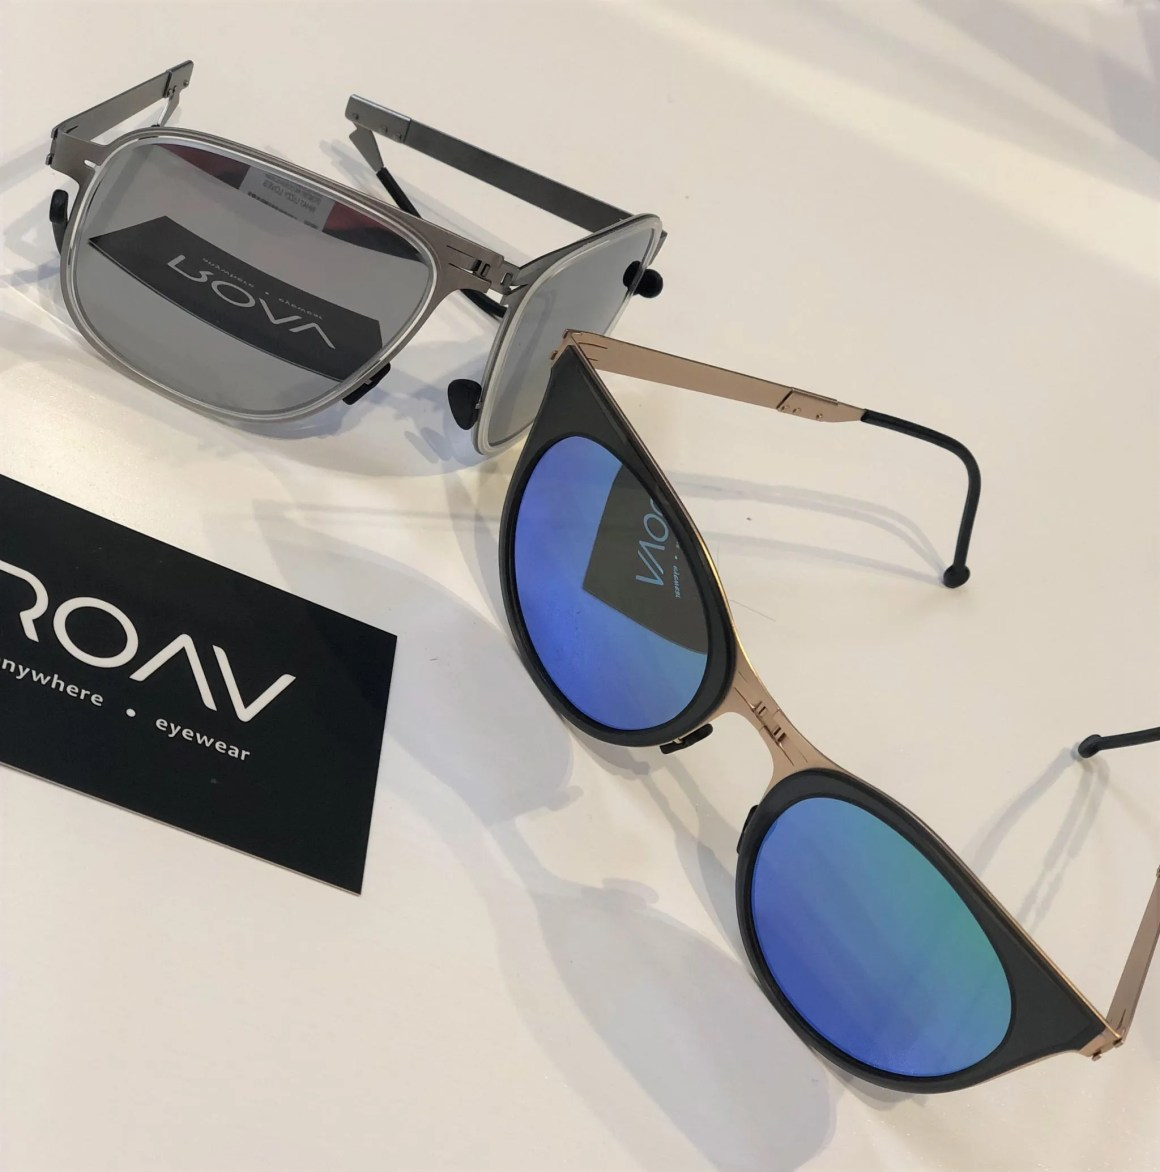 Optrafair 2019 Bondeye Optical ROAV